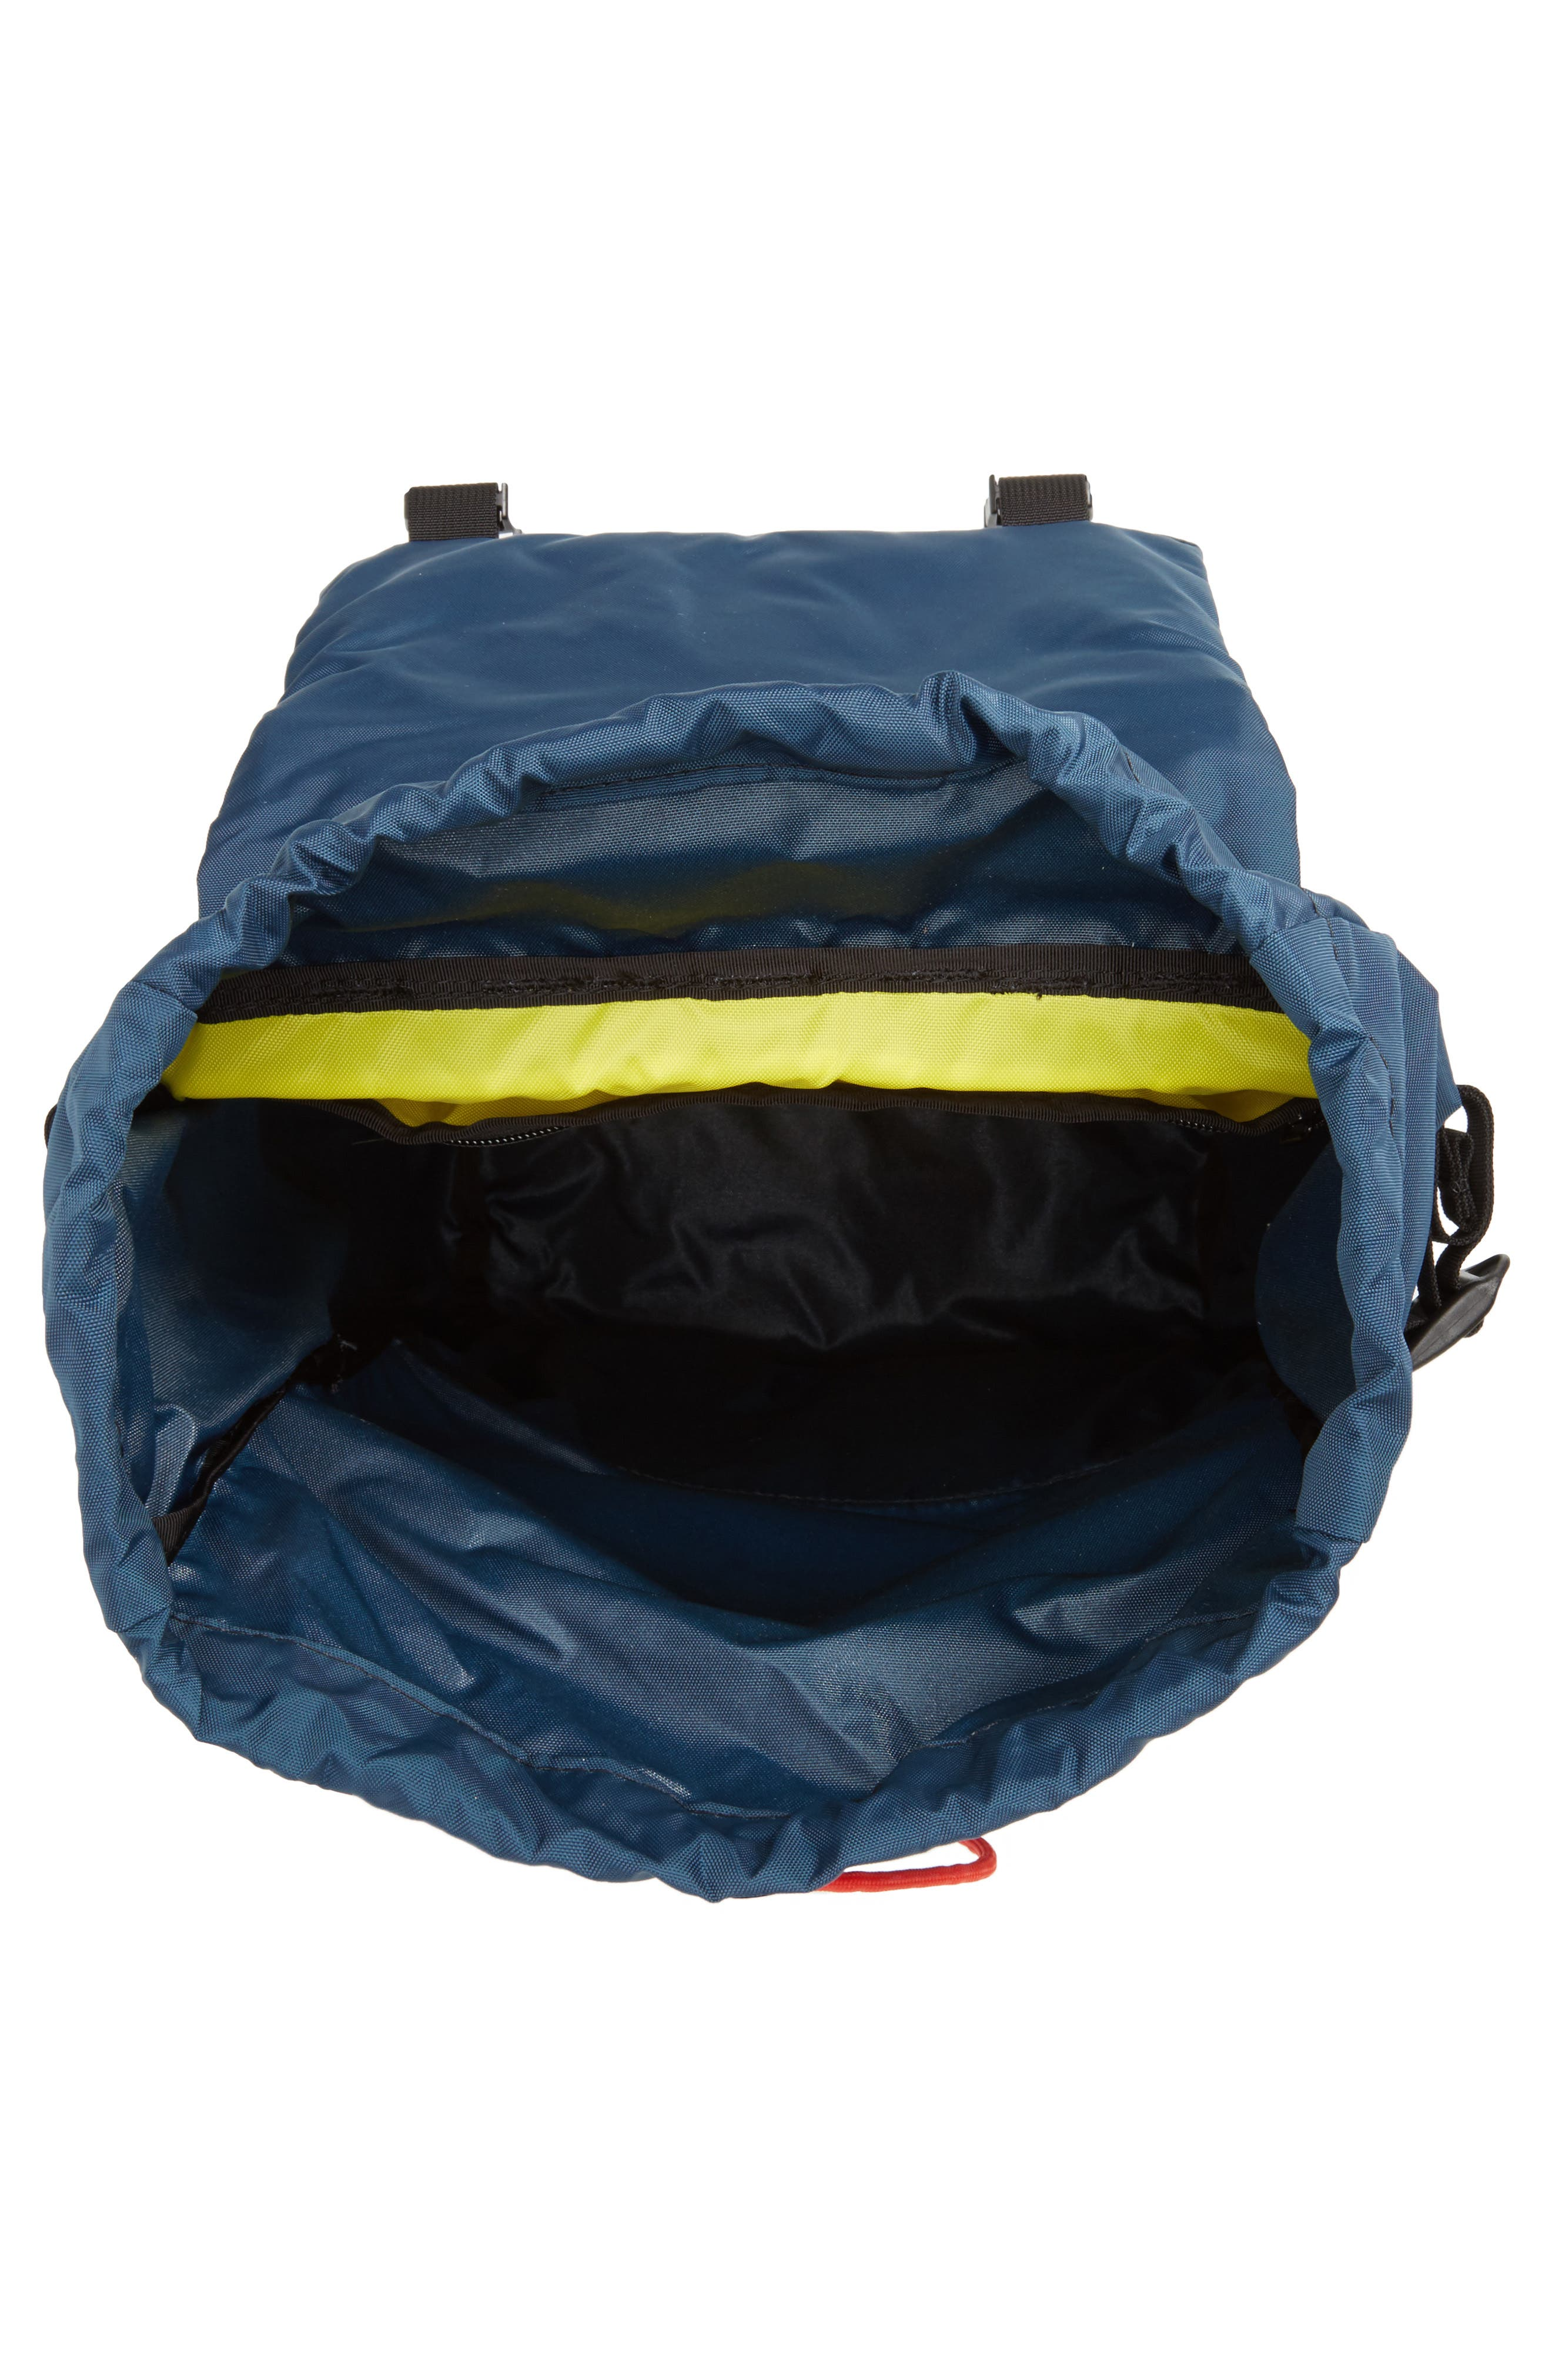 Rover Backpack,                             Alternate thumbnail 4, color,                             NAVY